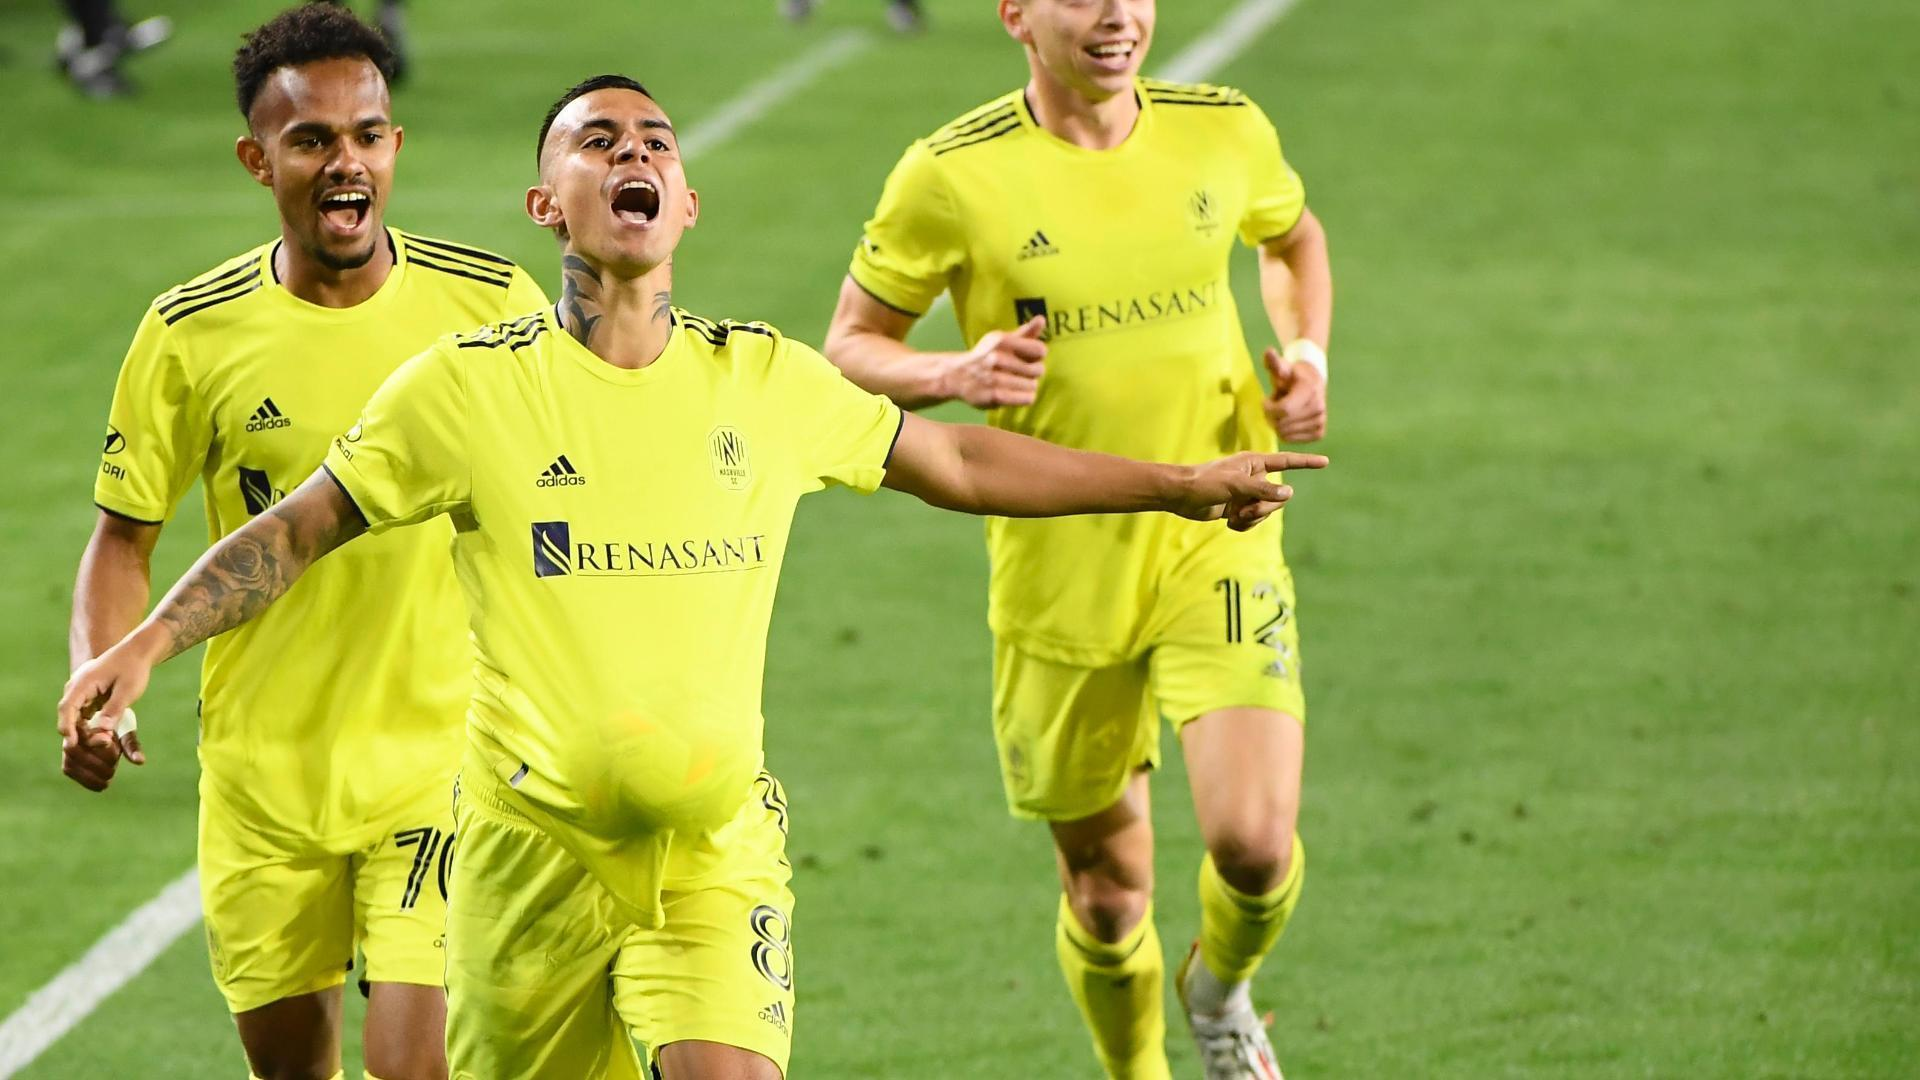 Randall Leal scores a jaw-dropping goal for Nashville SC